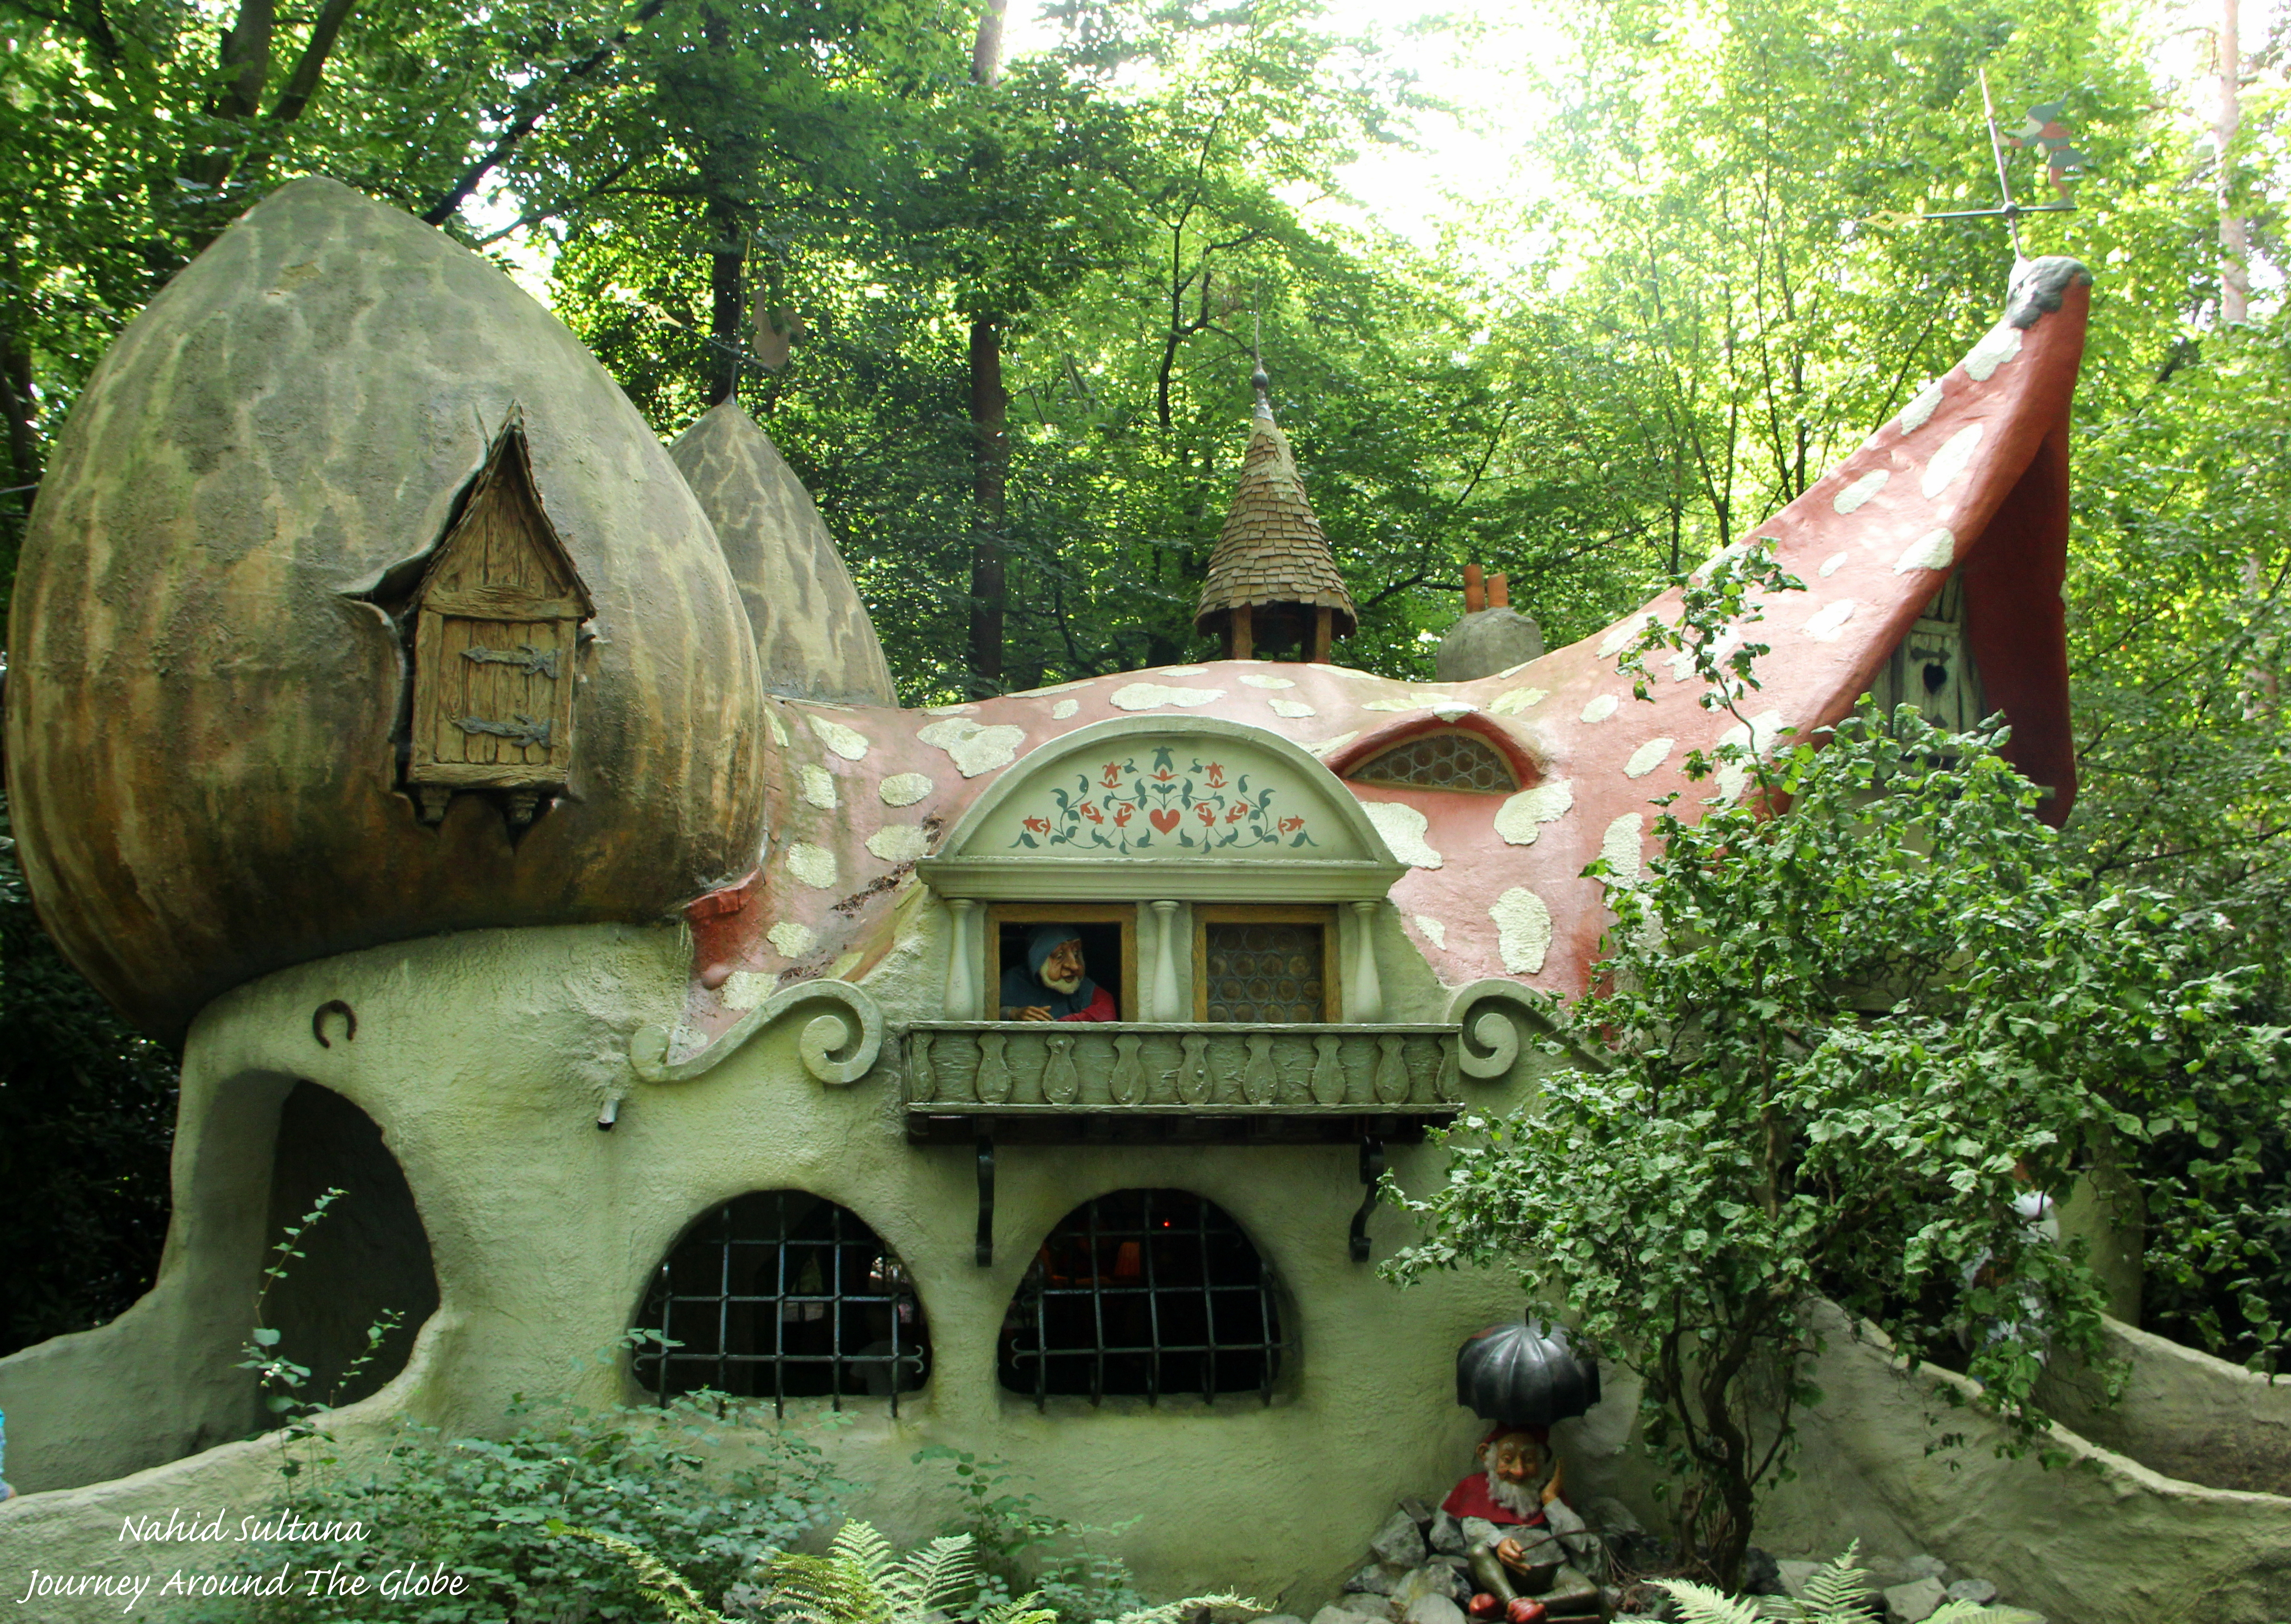 Efteling in kaatsheuvel journey around the globe - The water street magical town in holland ...